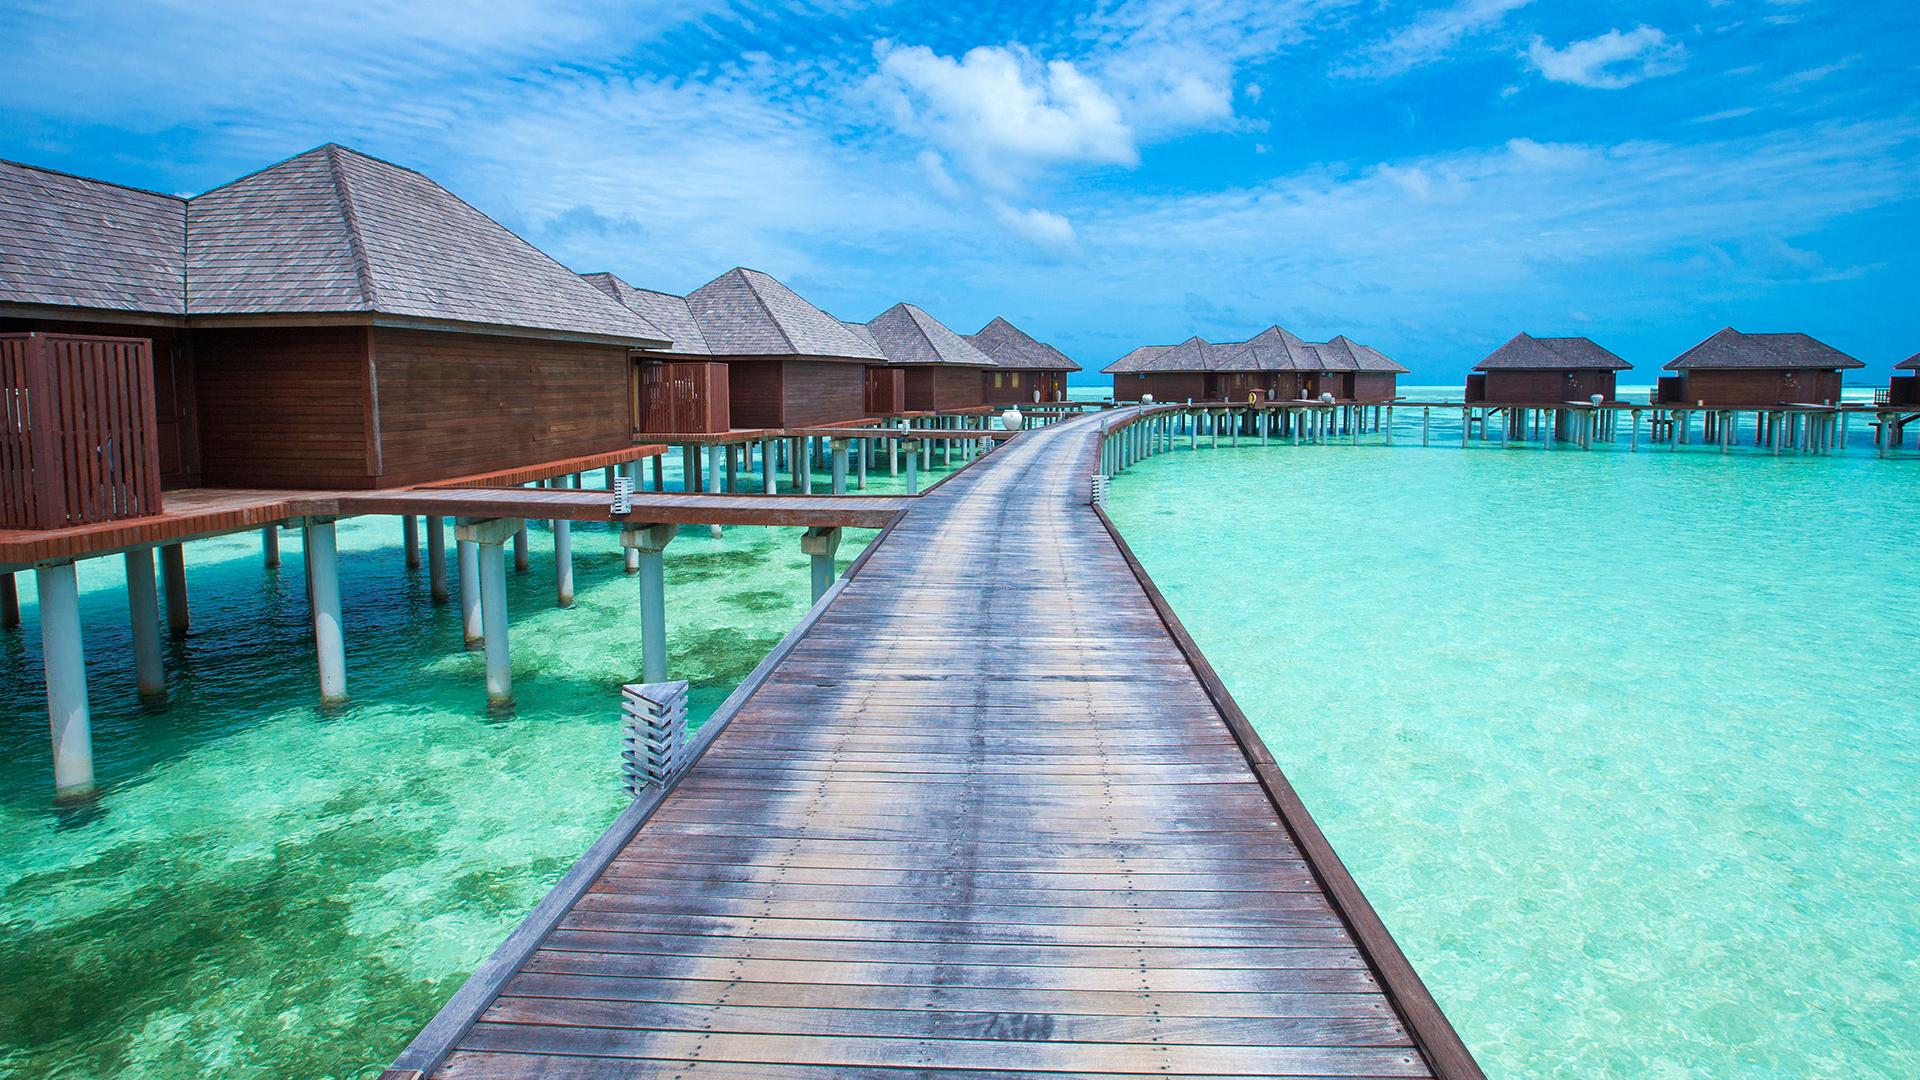 cheap airline tickets zurich to Maldives